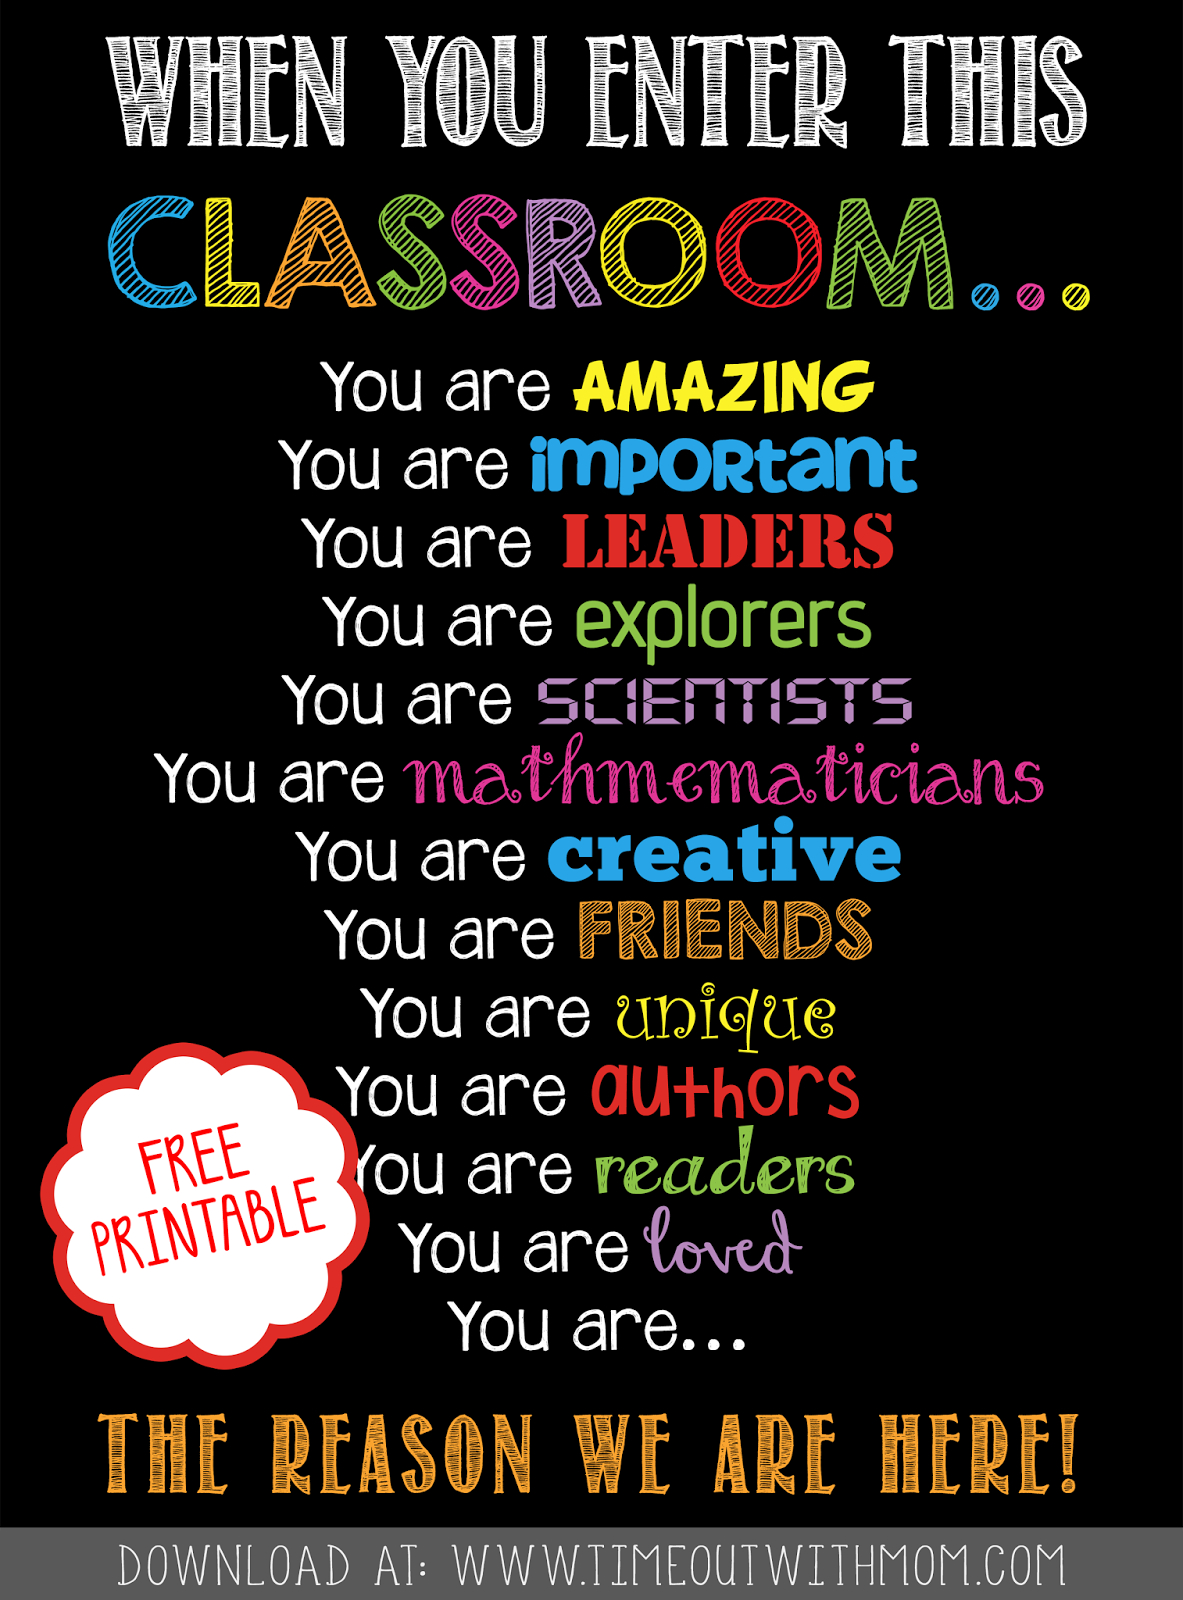 Free Printable - Welcome Back To School, Classroom Printable For - Free Printable Welcome Back Signs For Work